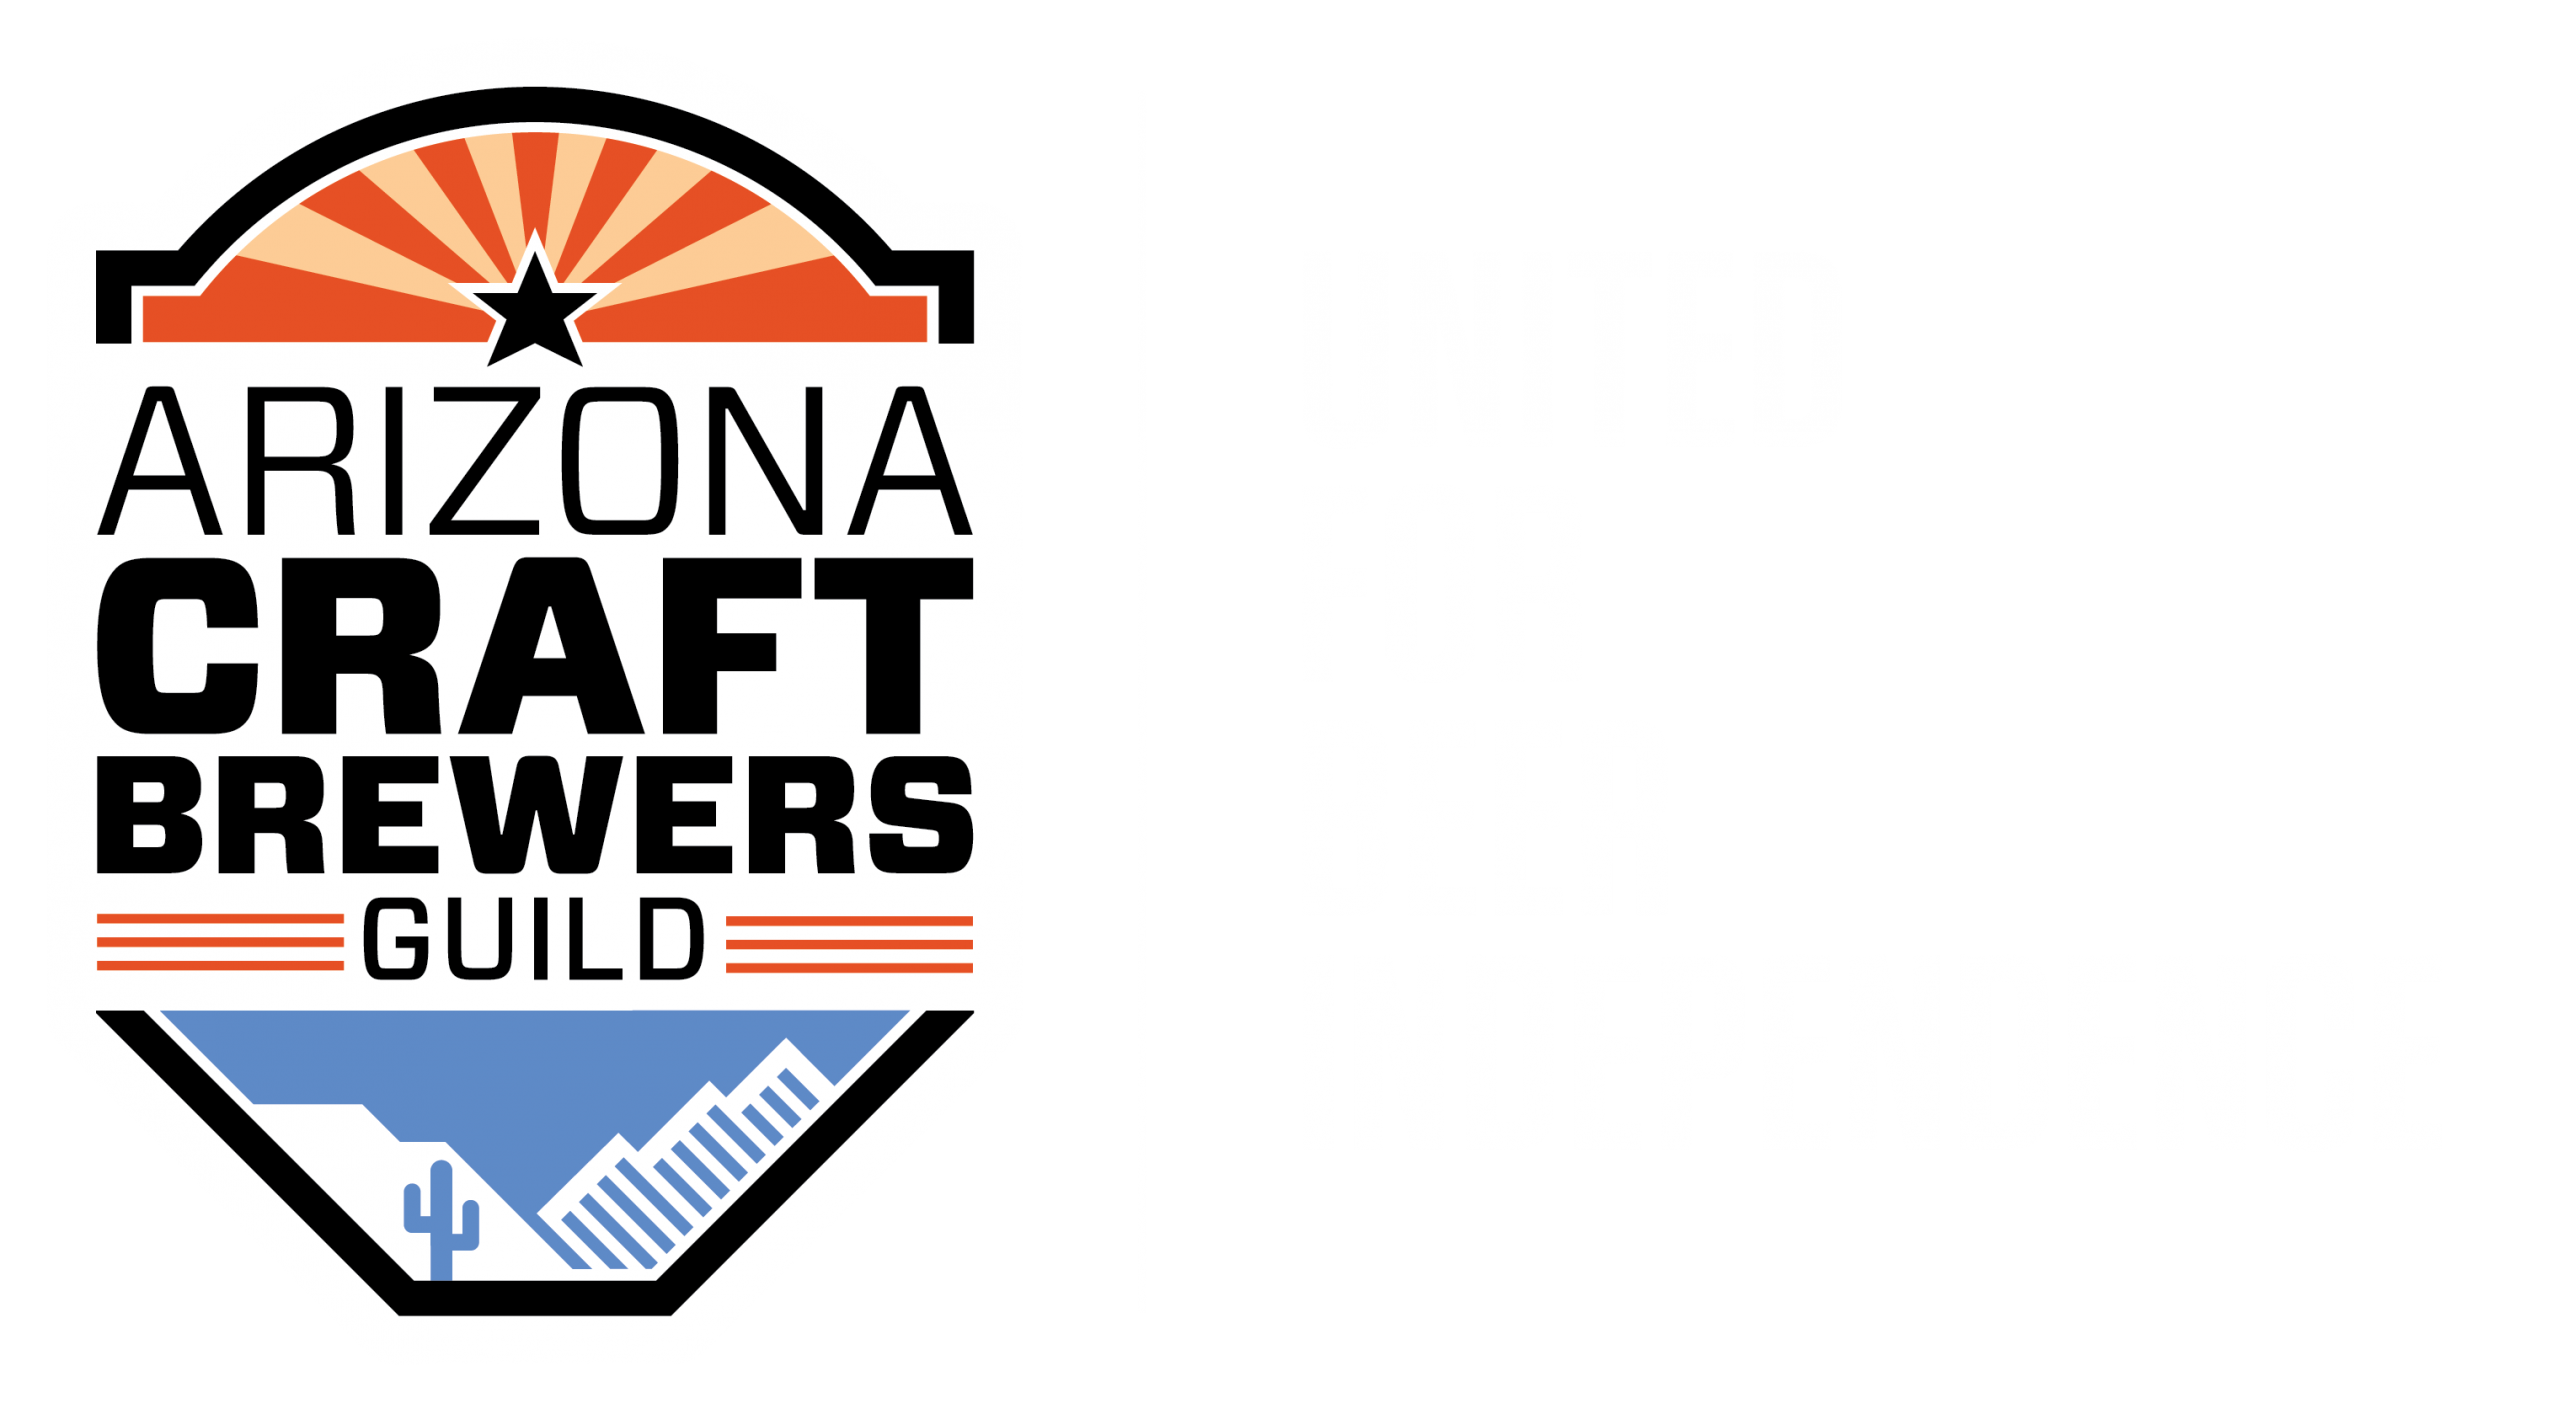 Arizona Beer Week | Arizona Craft Brewers Guild